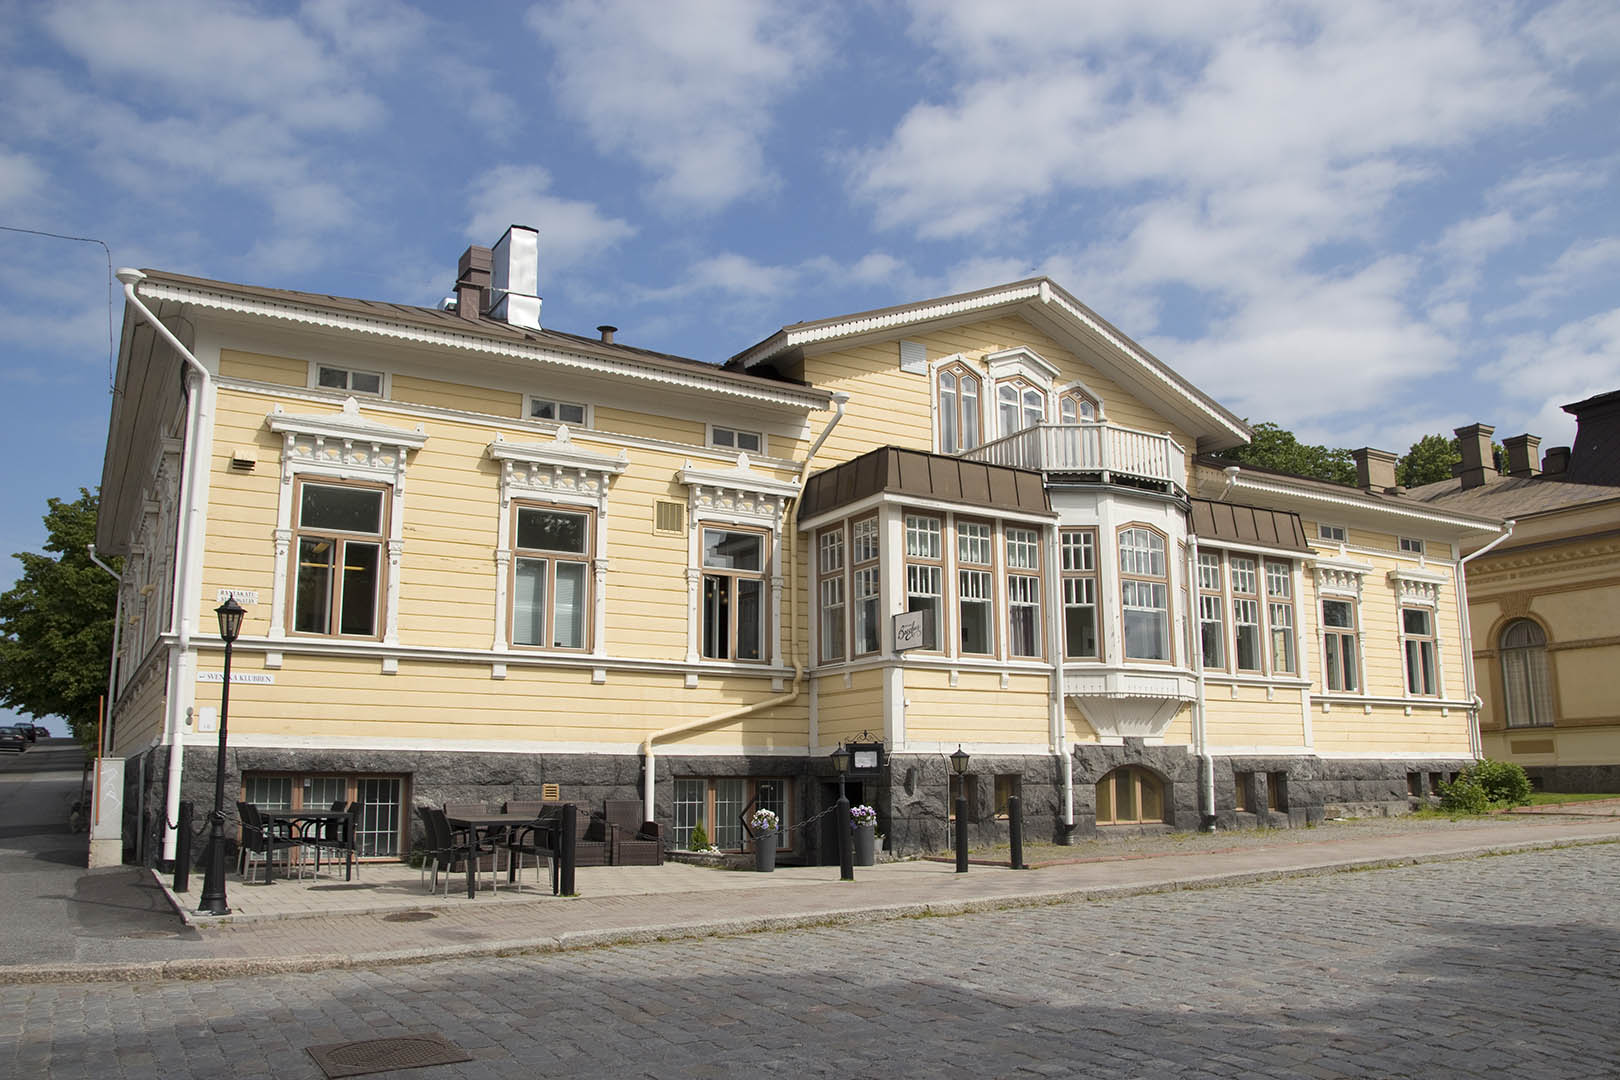 Restaurant Bacchus and Svenska Klubben are situated in a beautiful, historic building and offer antastic food in fine, historic settings